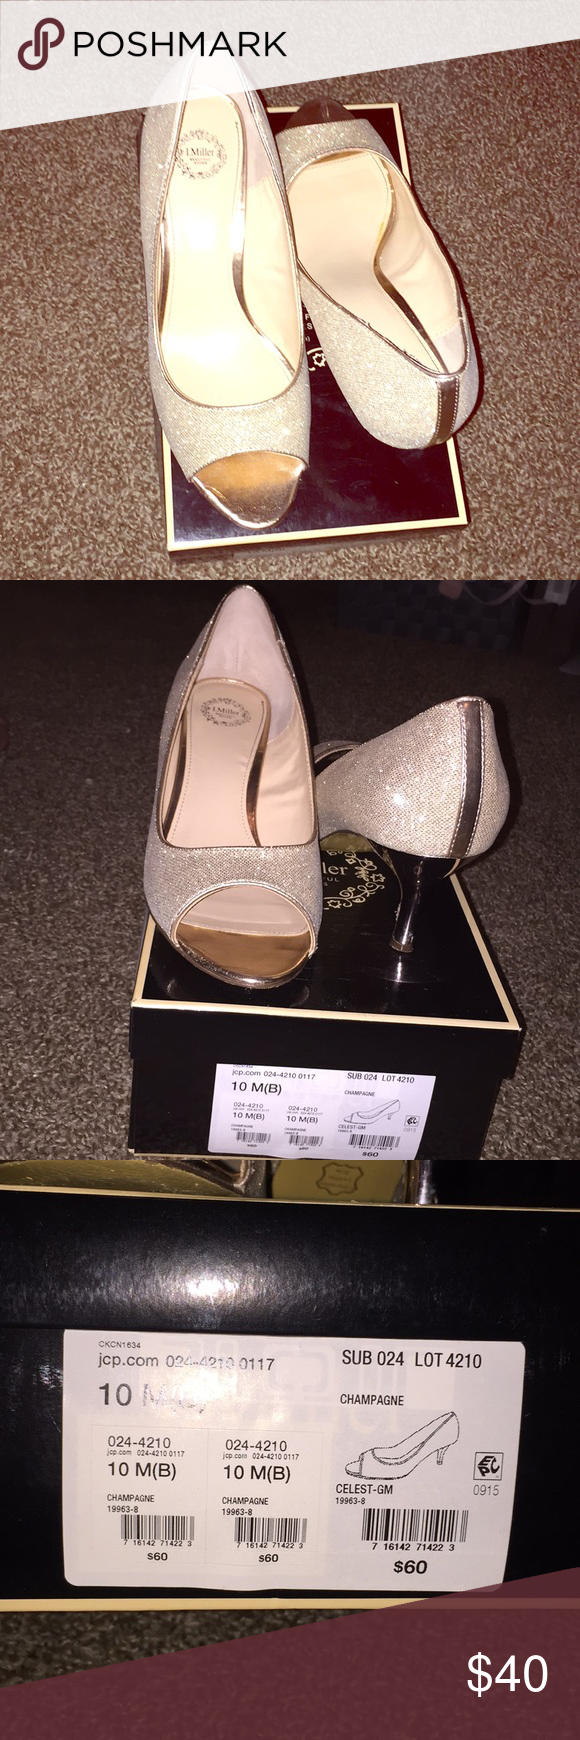 Heels Sparkling Gold Peep Toe Jcpenney Shoes Heels With Images Jcpenney Shoes Heels Shoes